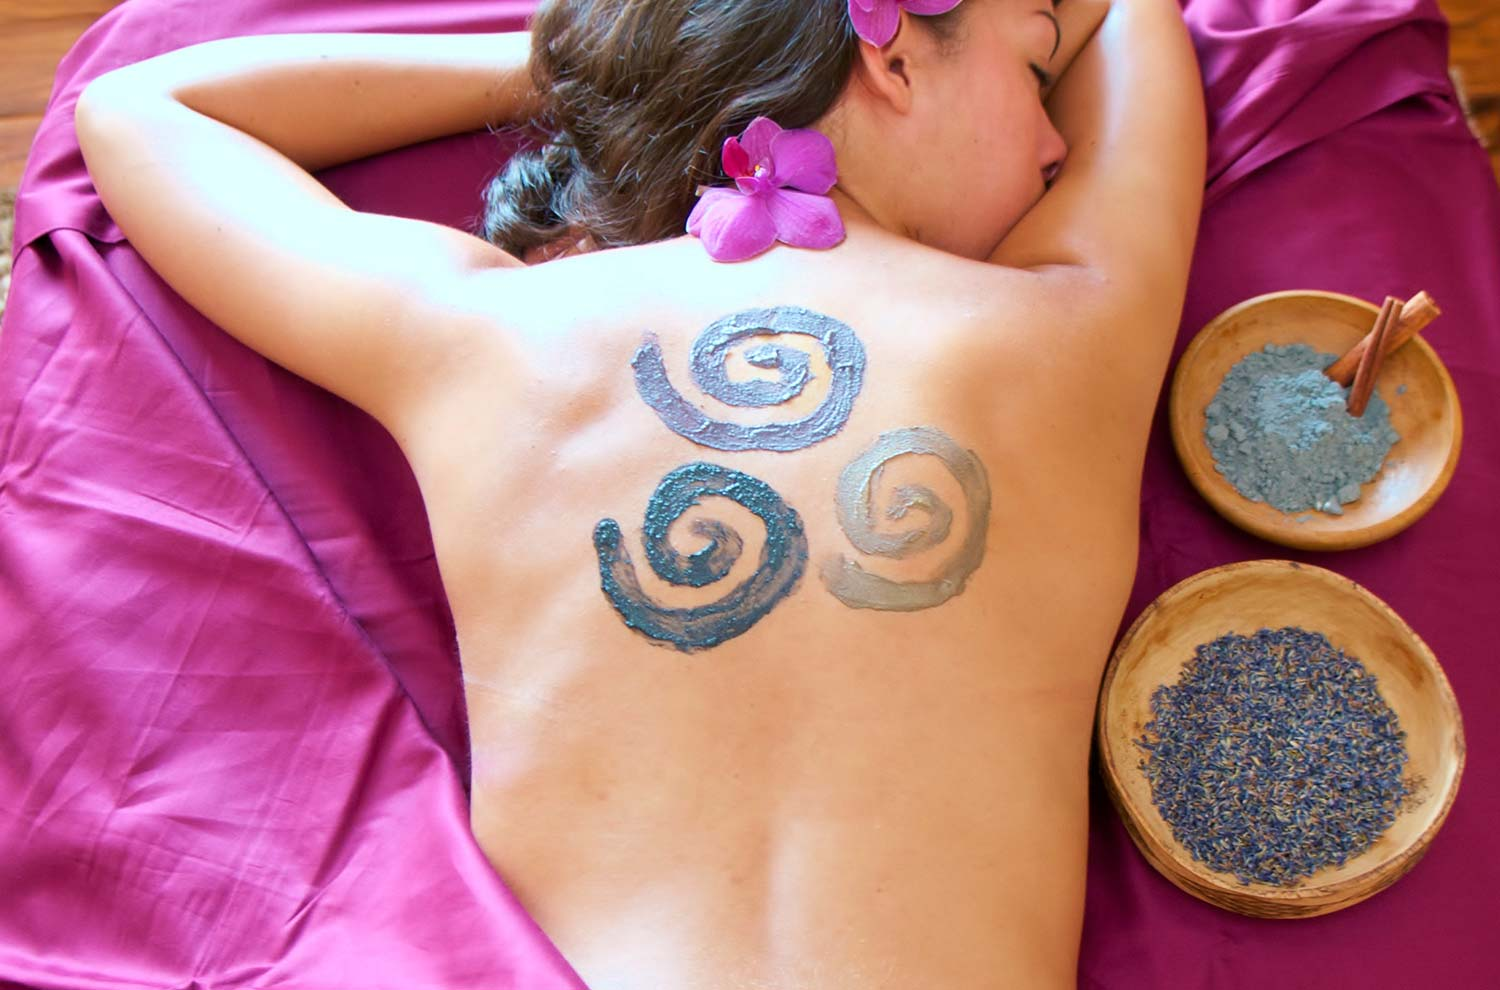 Woman with spirals on her back